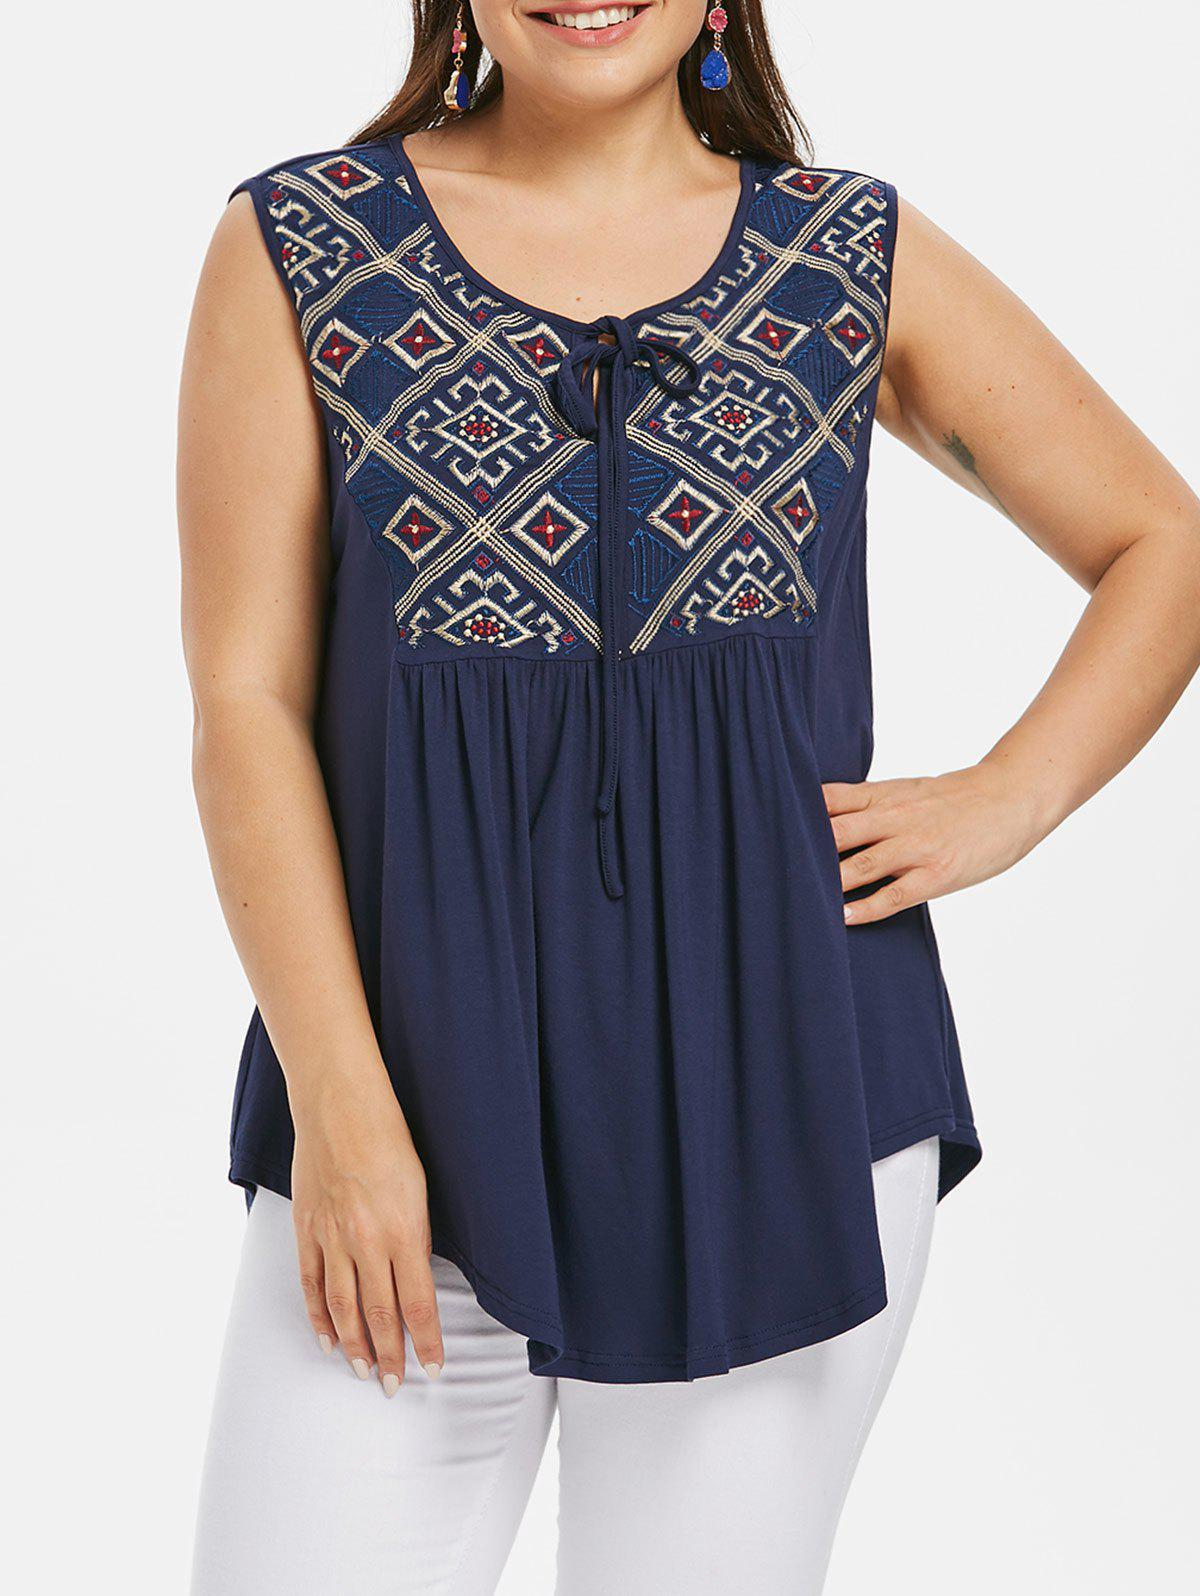 ca82c6e824d 2019 Plus Size Ethnic Embroidered Tank Top